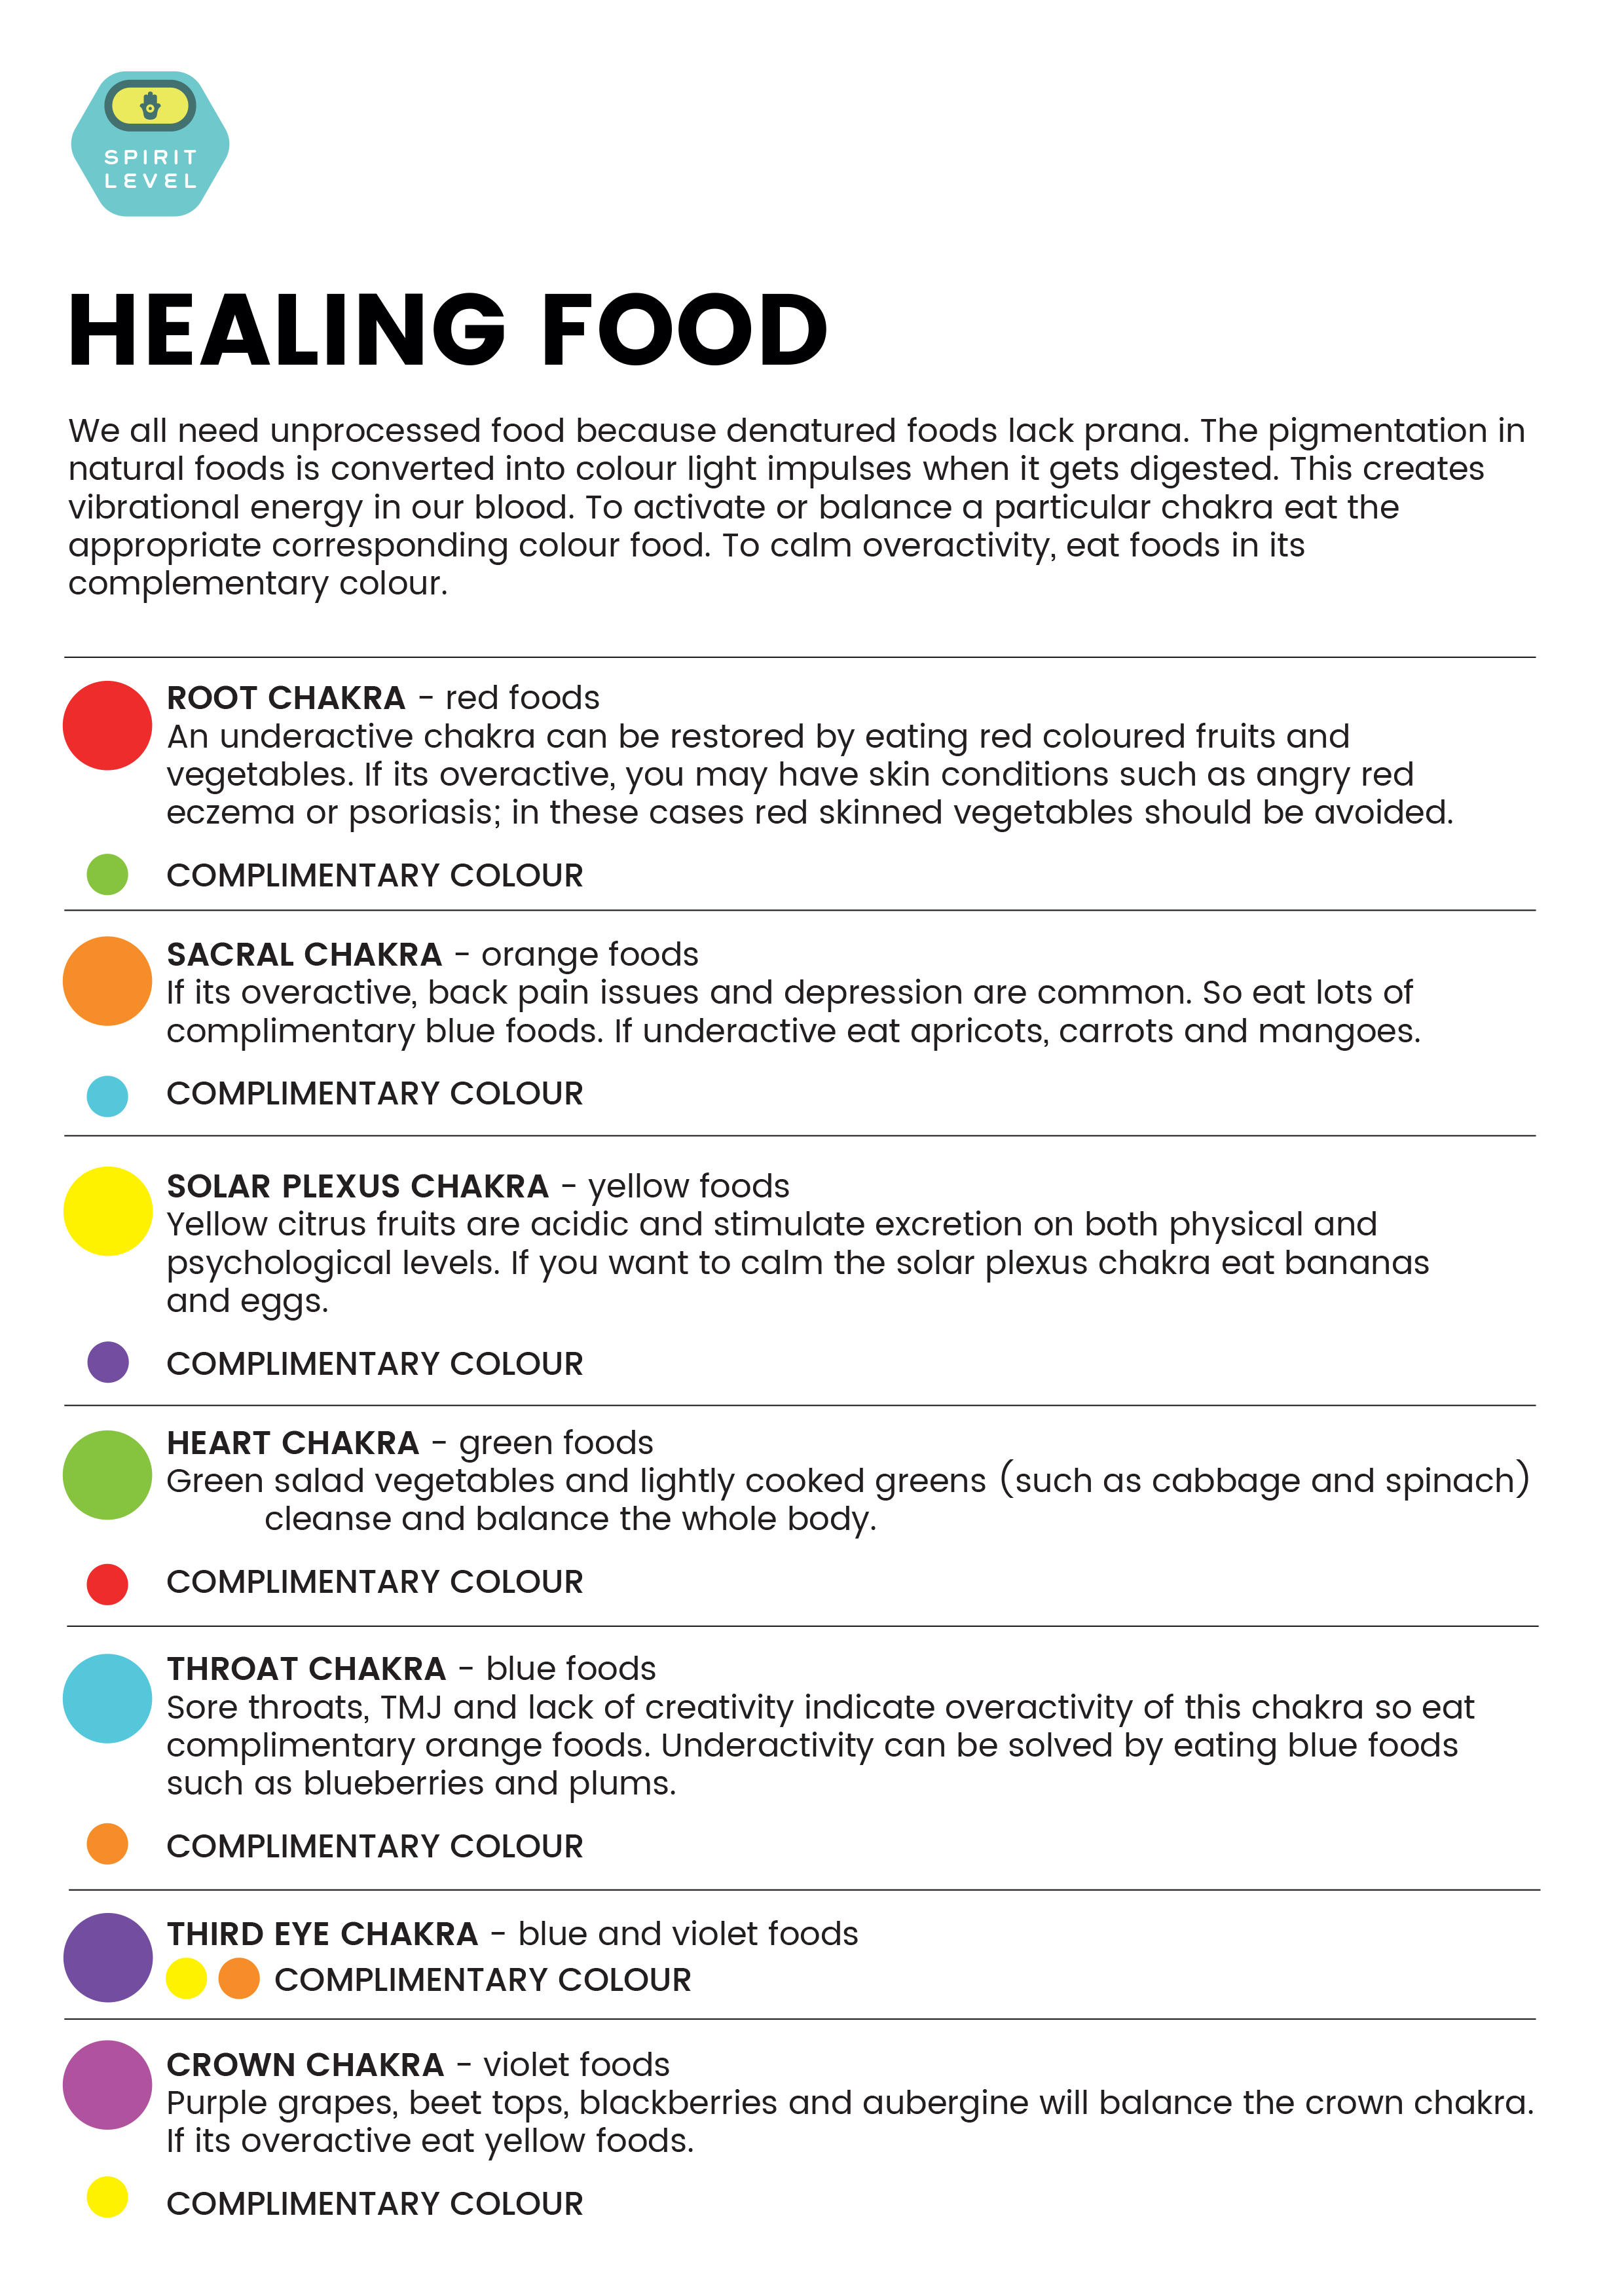 Eating The Right Food Can Help Balance A Chakra And Thus